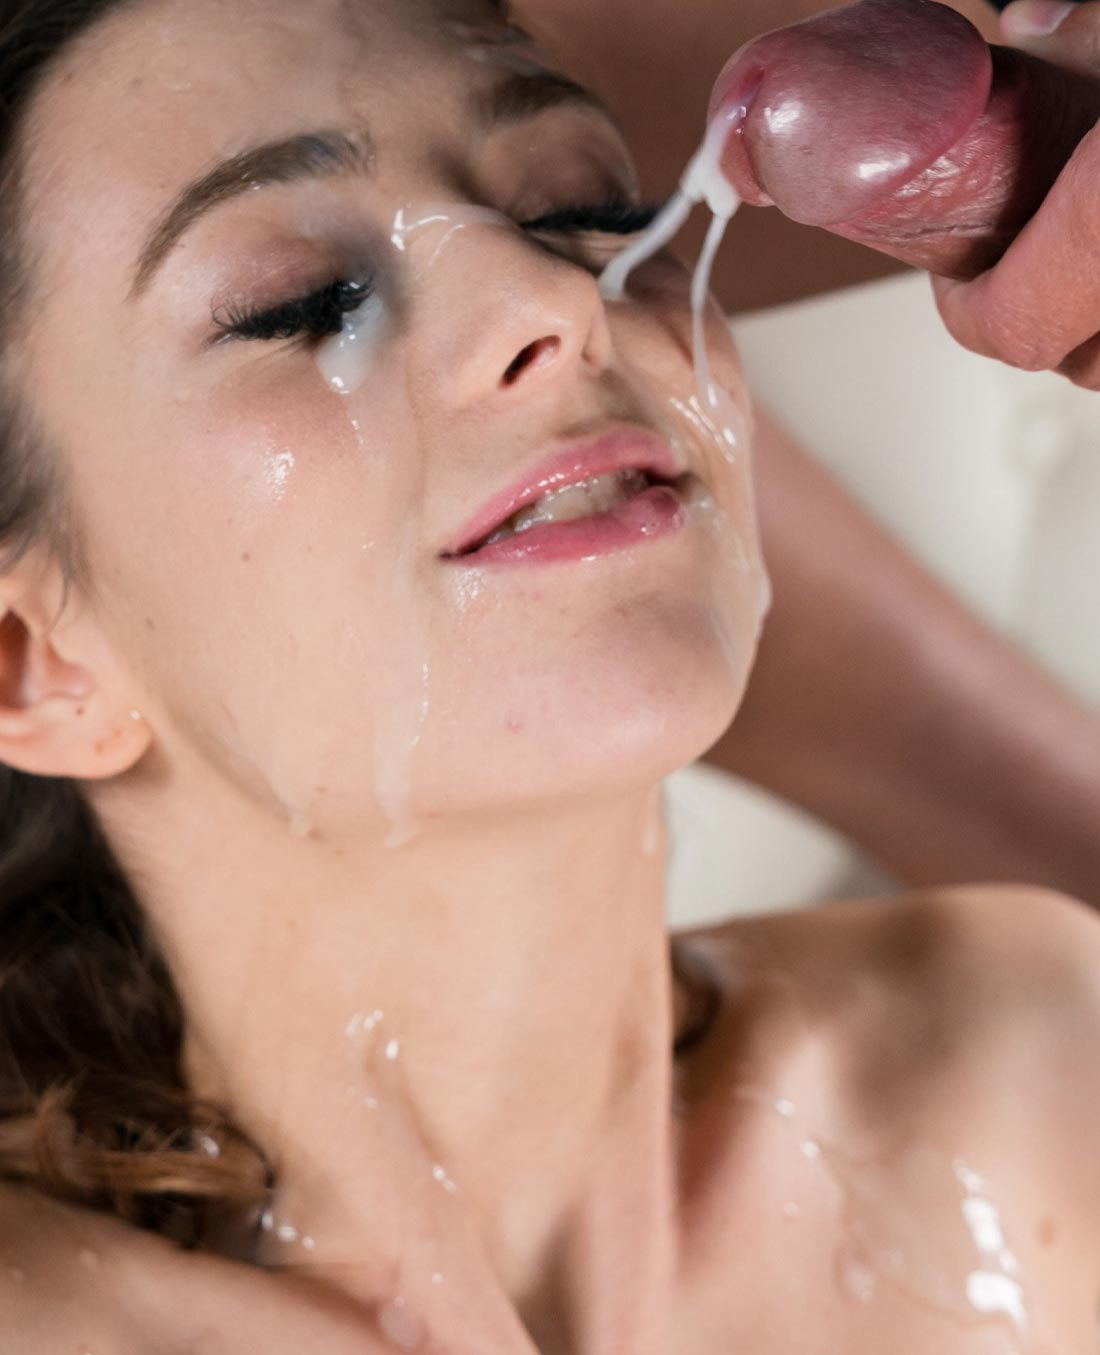 Tera Link nude for SpermMania in Tera Link's Sticky Bukkake Facial, an uncensored Cumshot Fetish video. A nude girl get her face covered in cum.